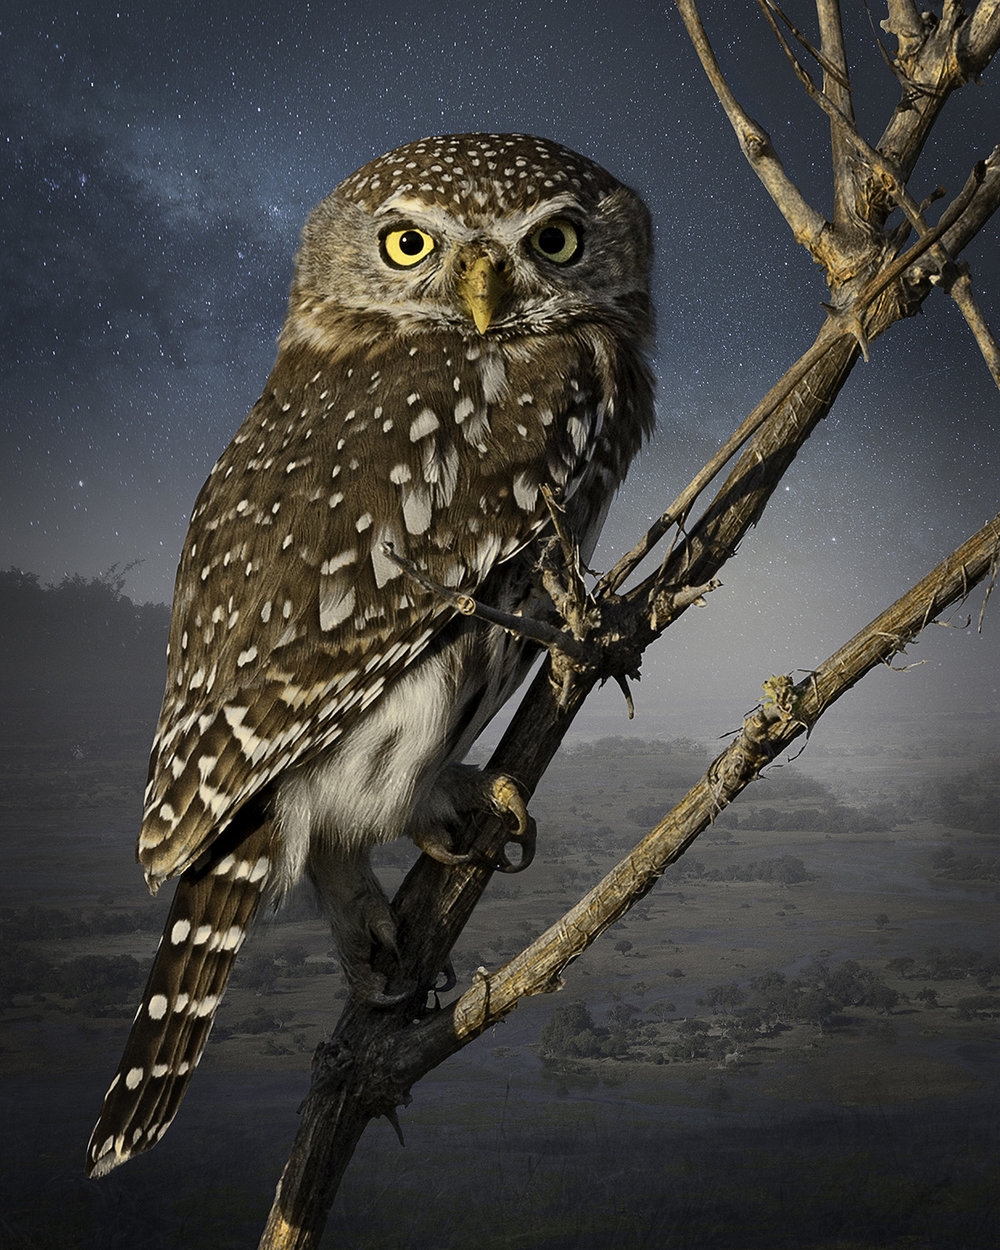 4. Spotted Owlet